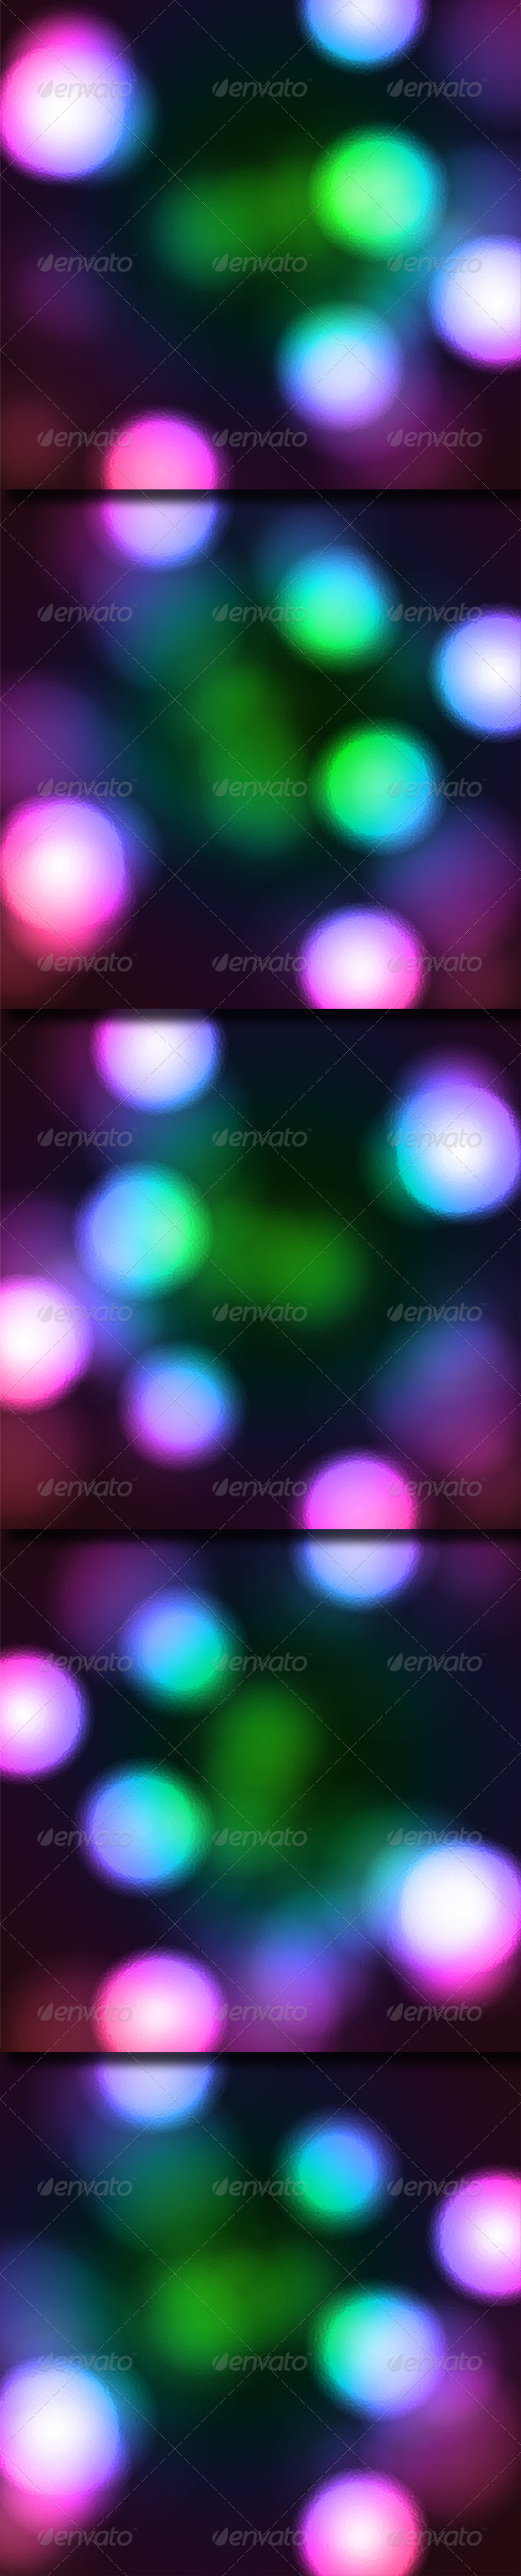 GraphicRiver Glowing Colored Spots 6516187